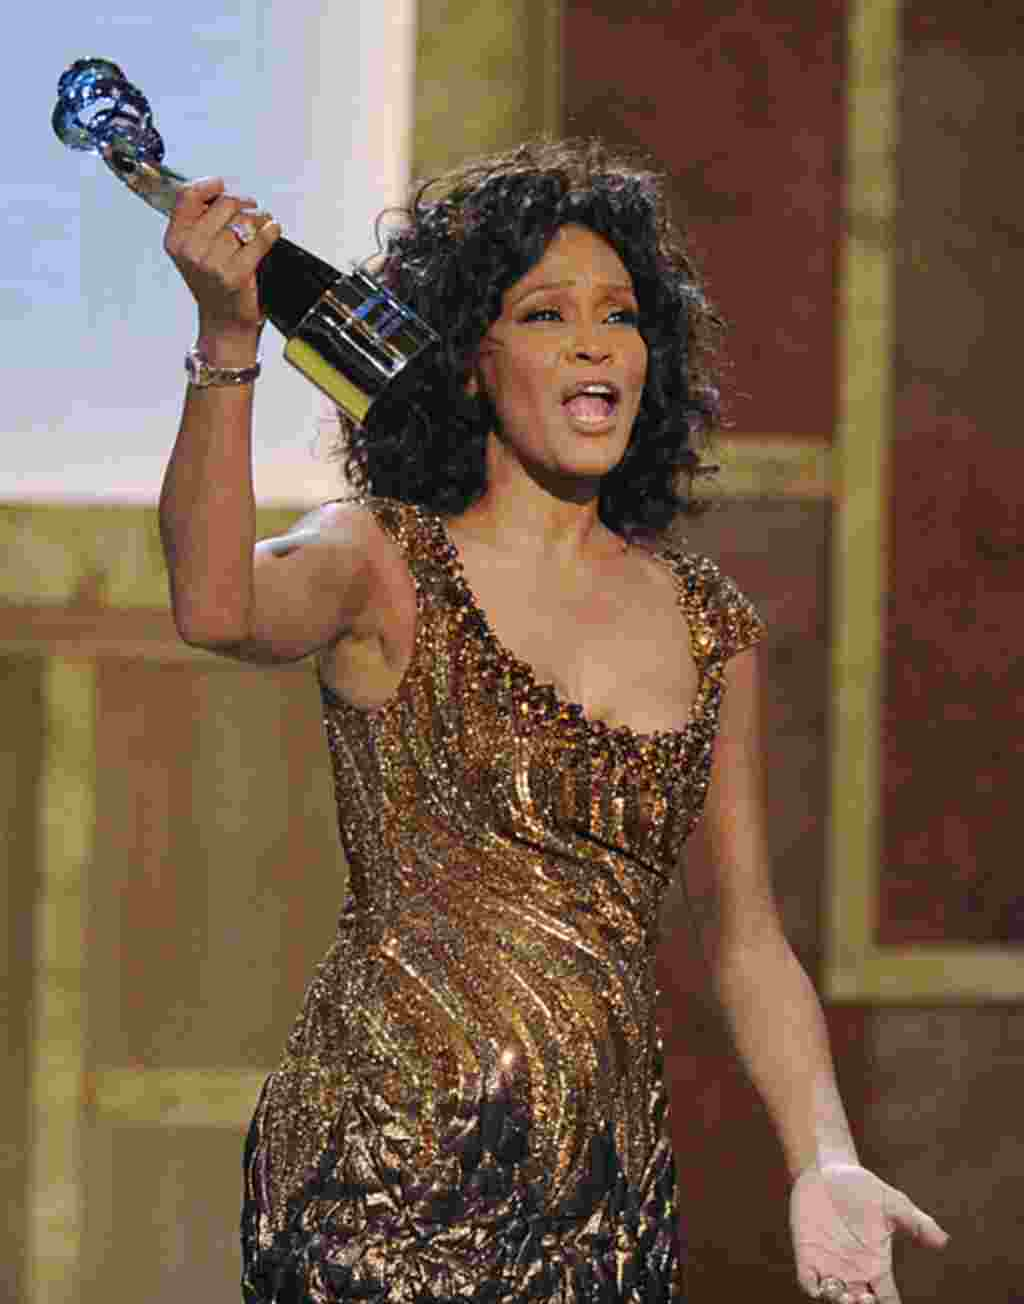 Whitney Houston accepts an award at the Warner Theatre during the 2010 BET Hip Hop Honors in Washington on January 16, 2010. Houston died February 11, 2012, at age 48. (AP)